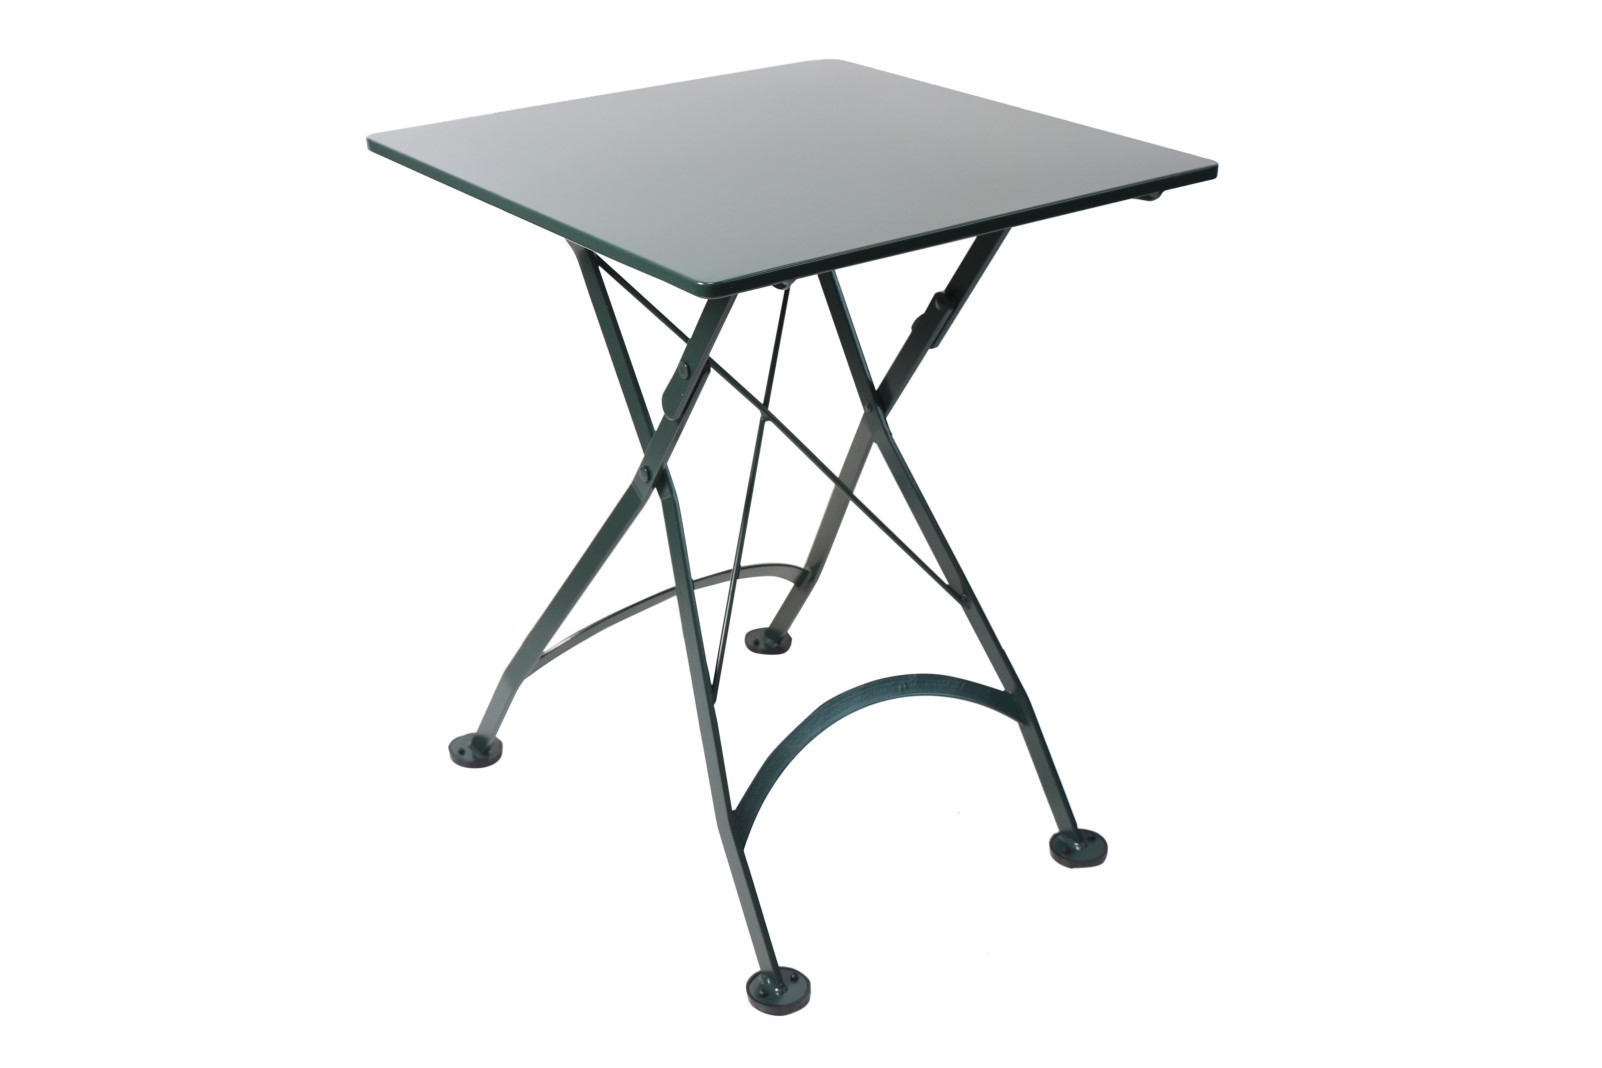 4122S-GR Metal Table with BlackGreen Top and frame 24-x-24